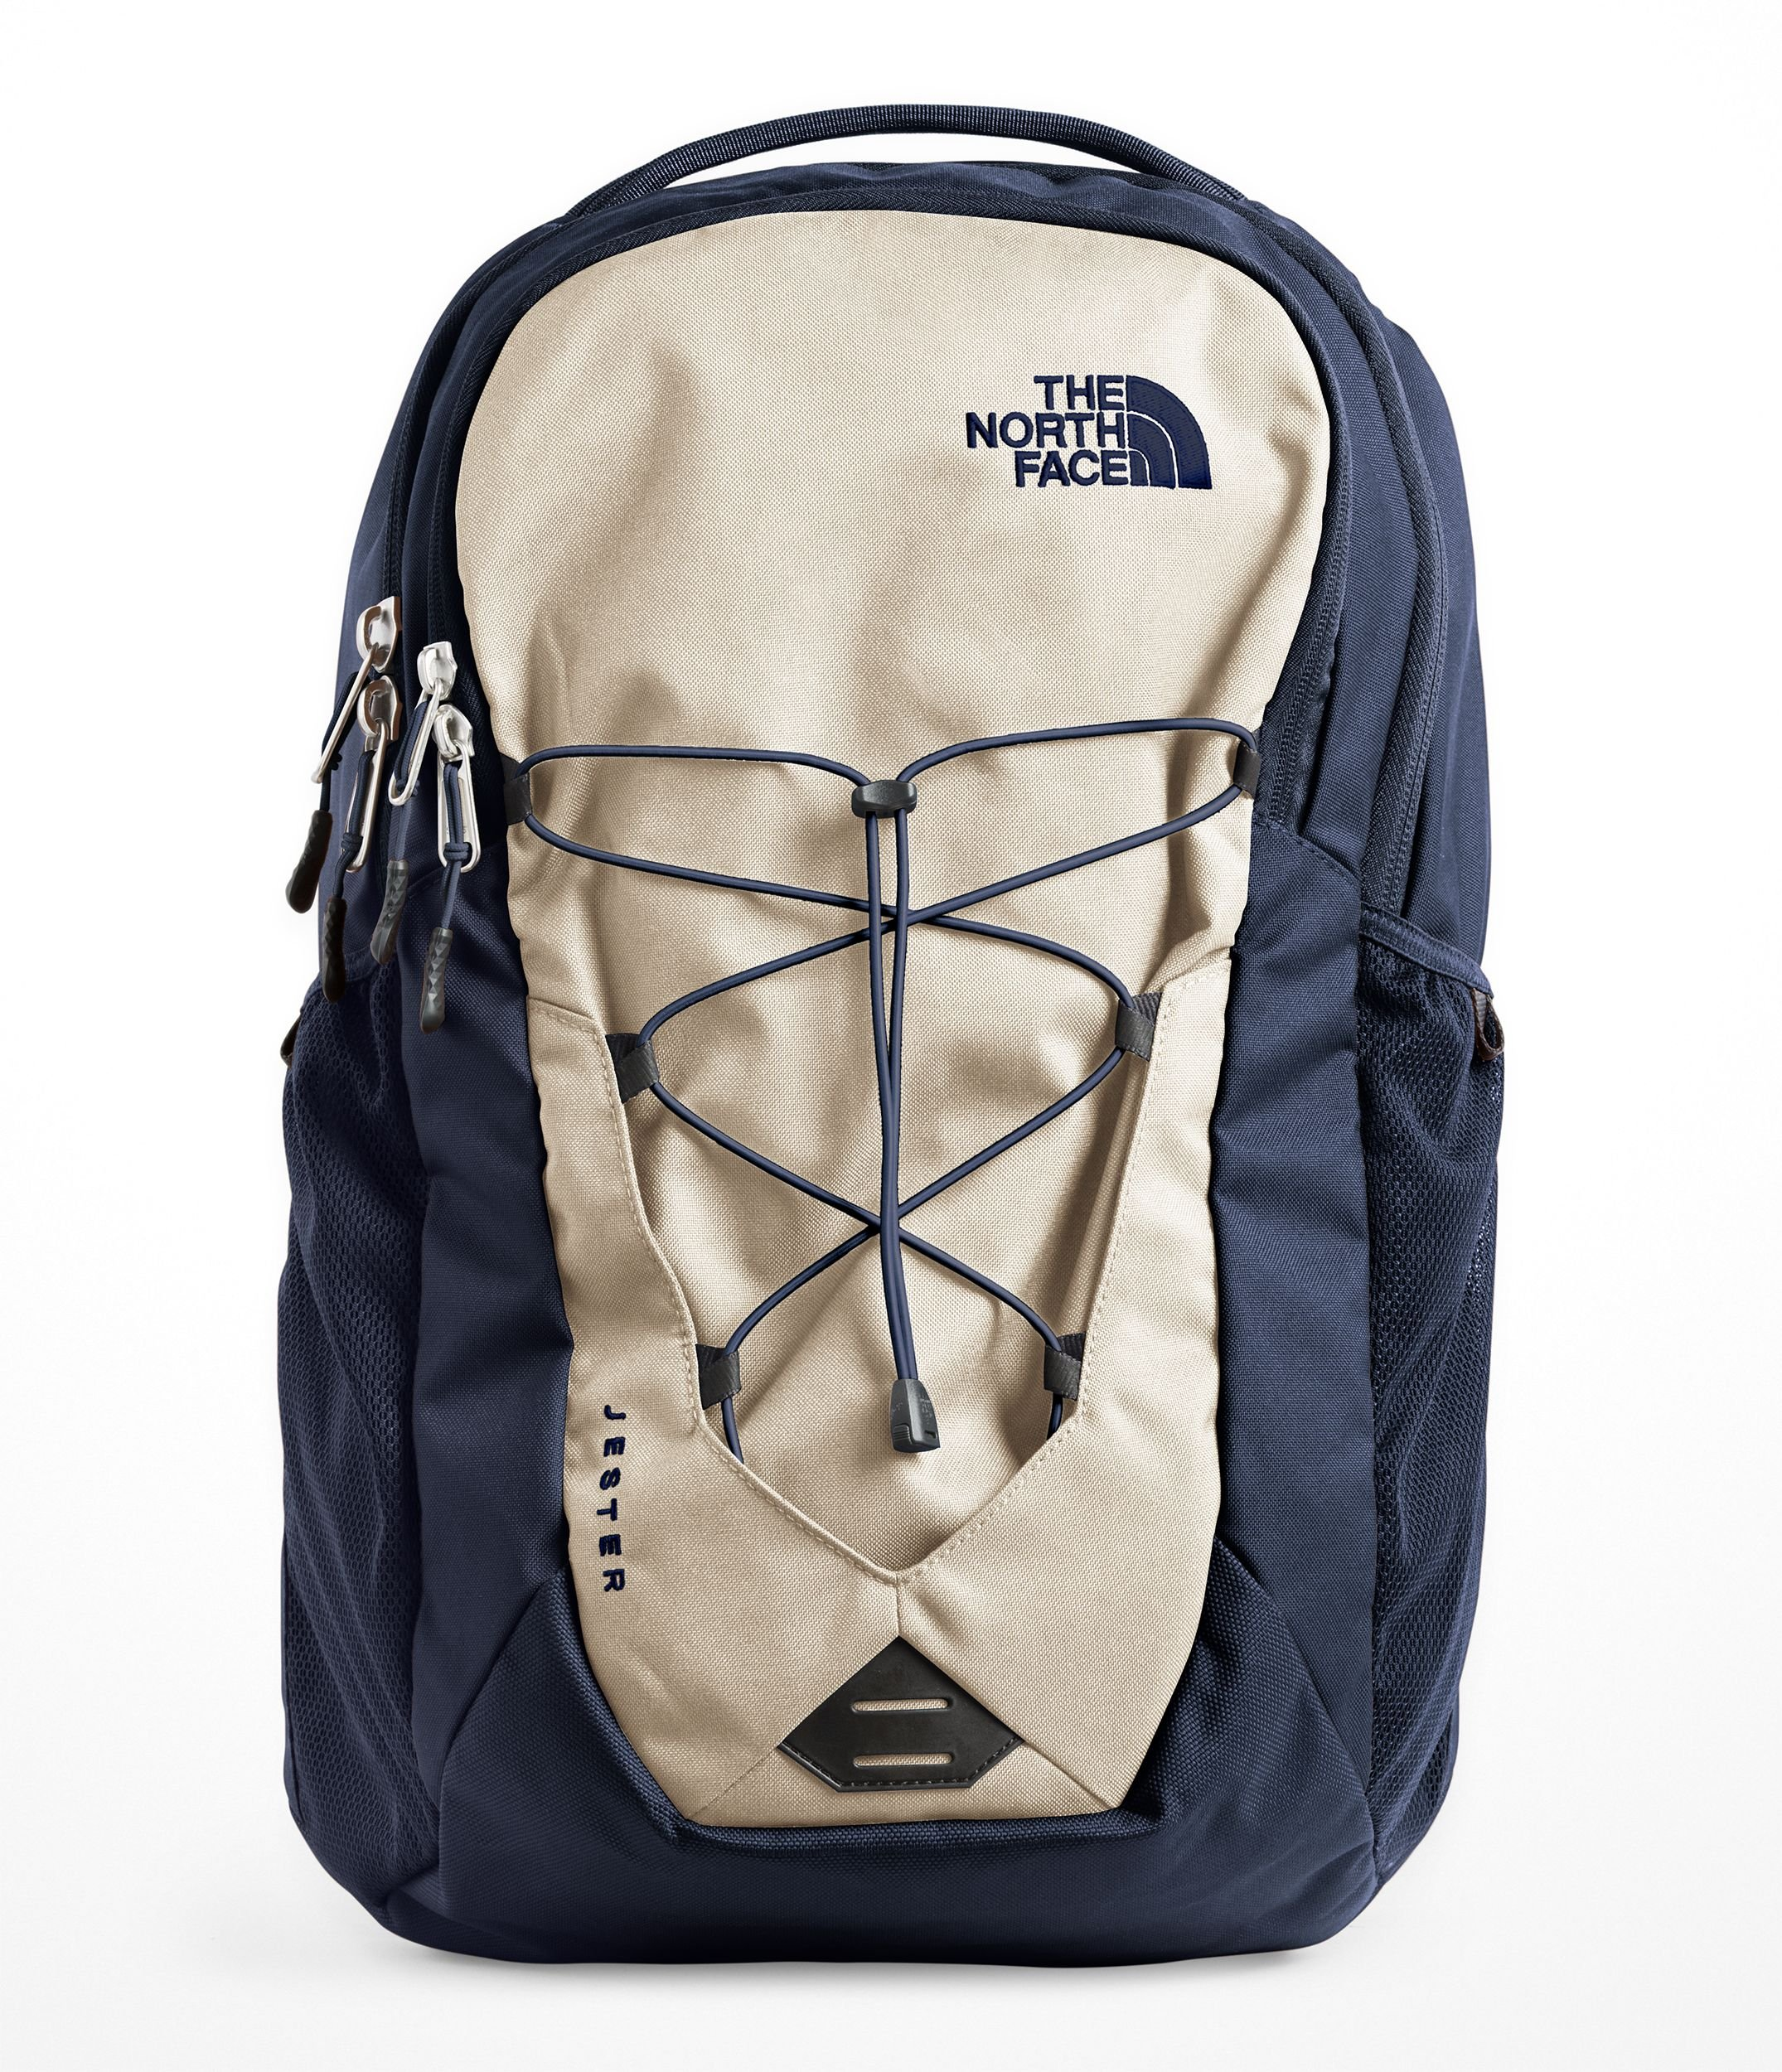 The North Face Jester - Peyote Beige & Urban Navy - OS